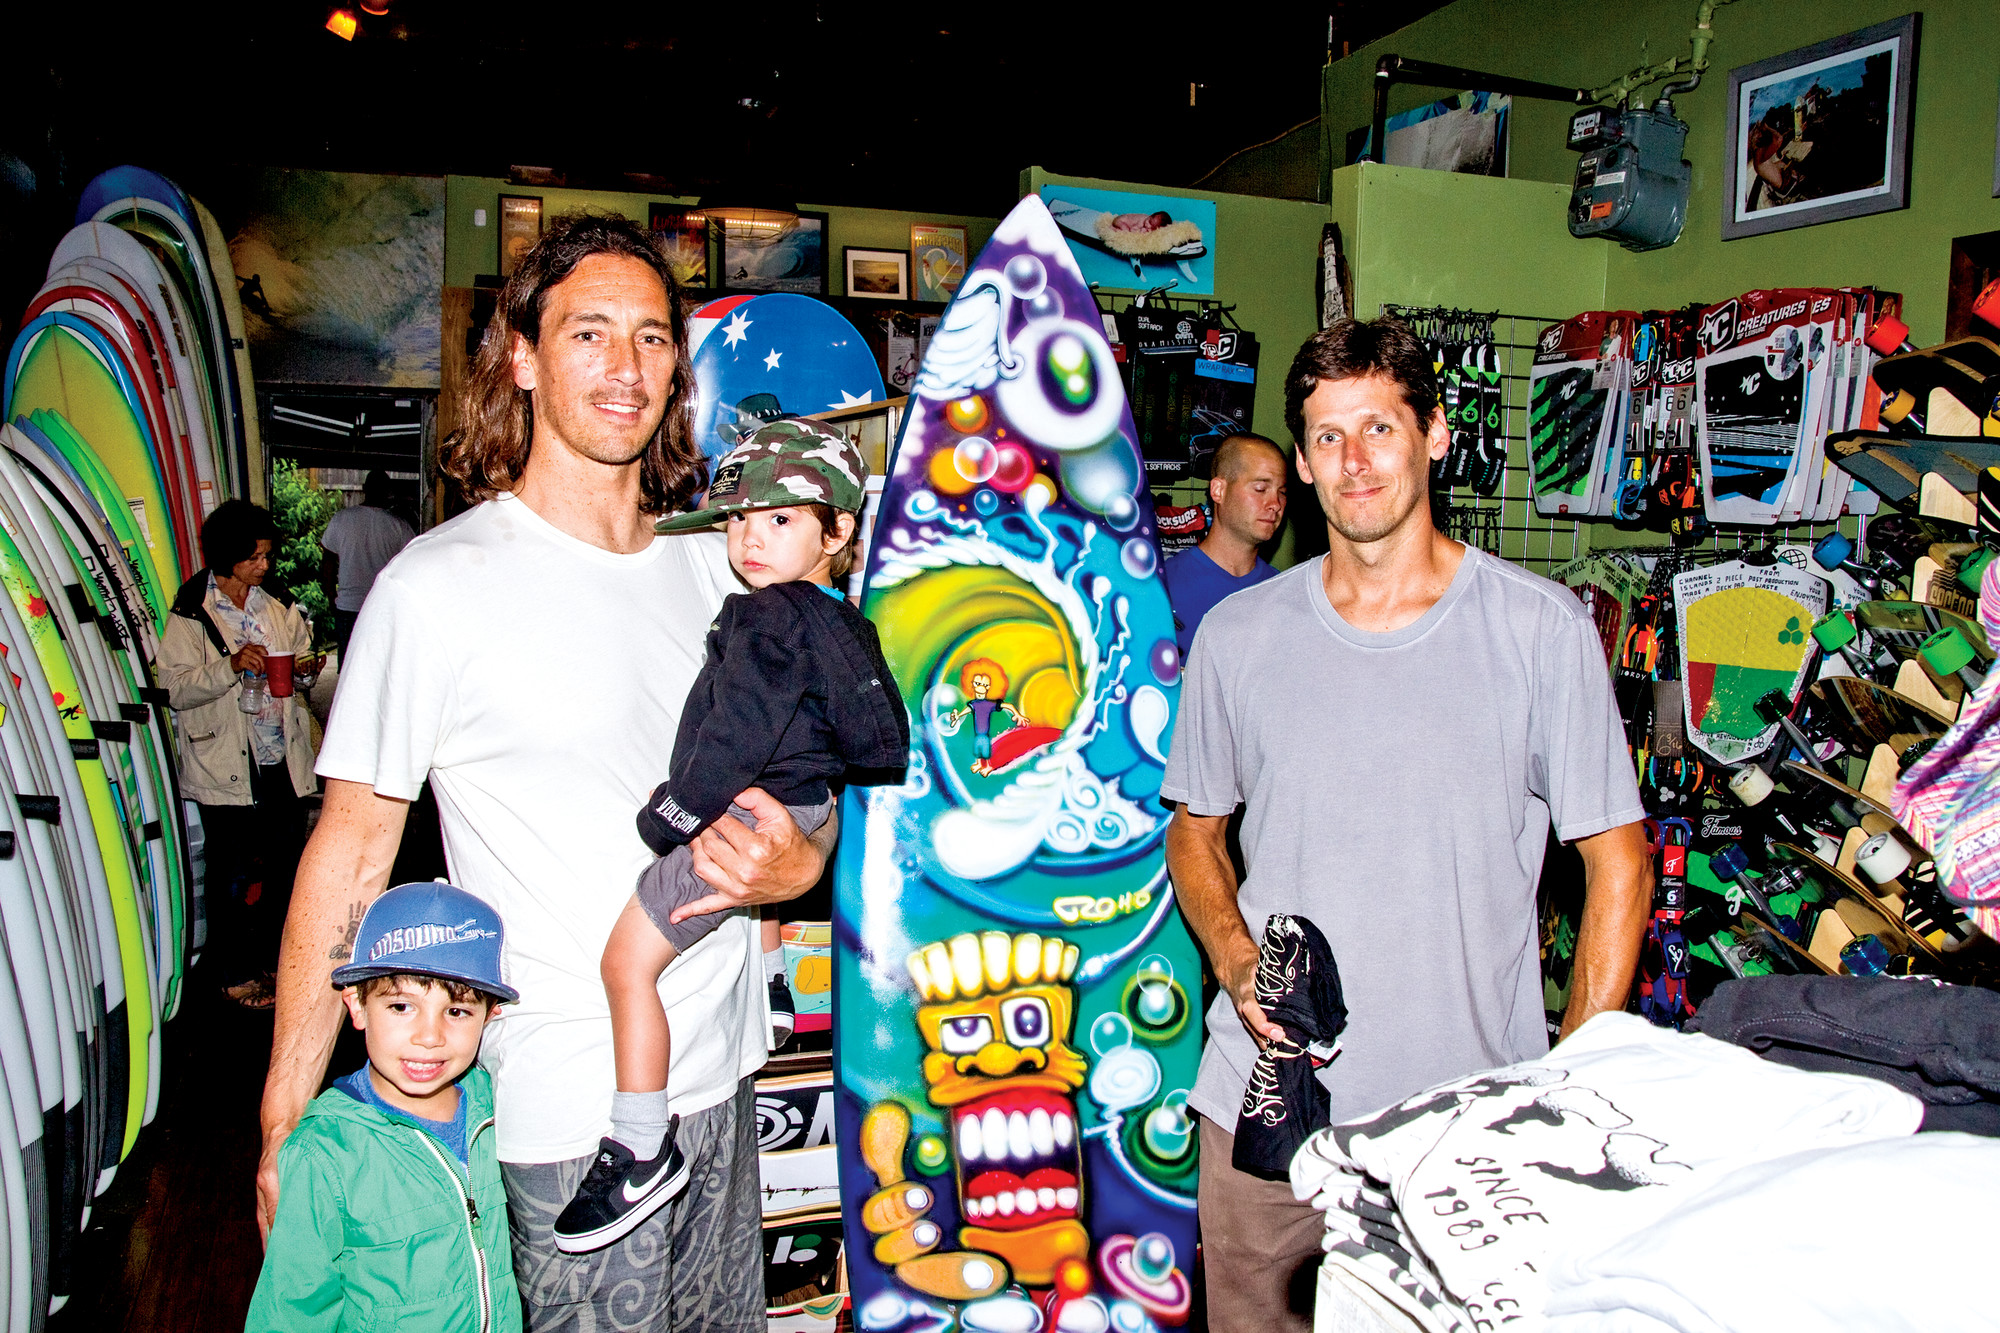 Unsound co-owner Dave Juan, left, with his kids, Brody and Dane, and co-owner Mike Nelson at Unsound's art show in June. Juan and Nelson worked to bring the Quiksilver event to town — and fought to salvage the competition after it was nearly canceled in the wake of Tropical Storm Irene.